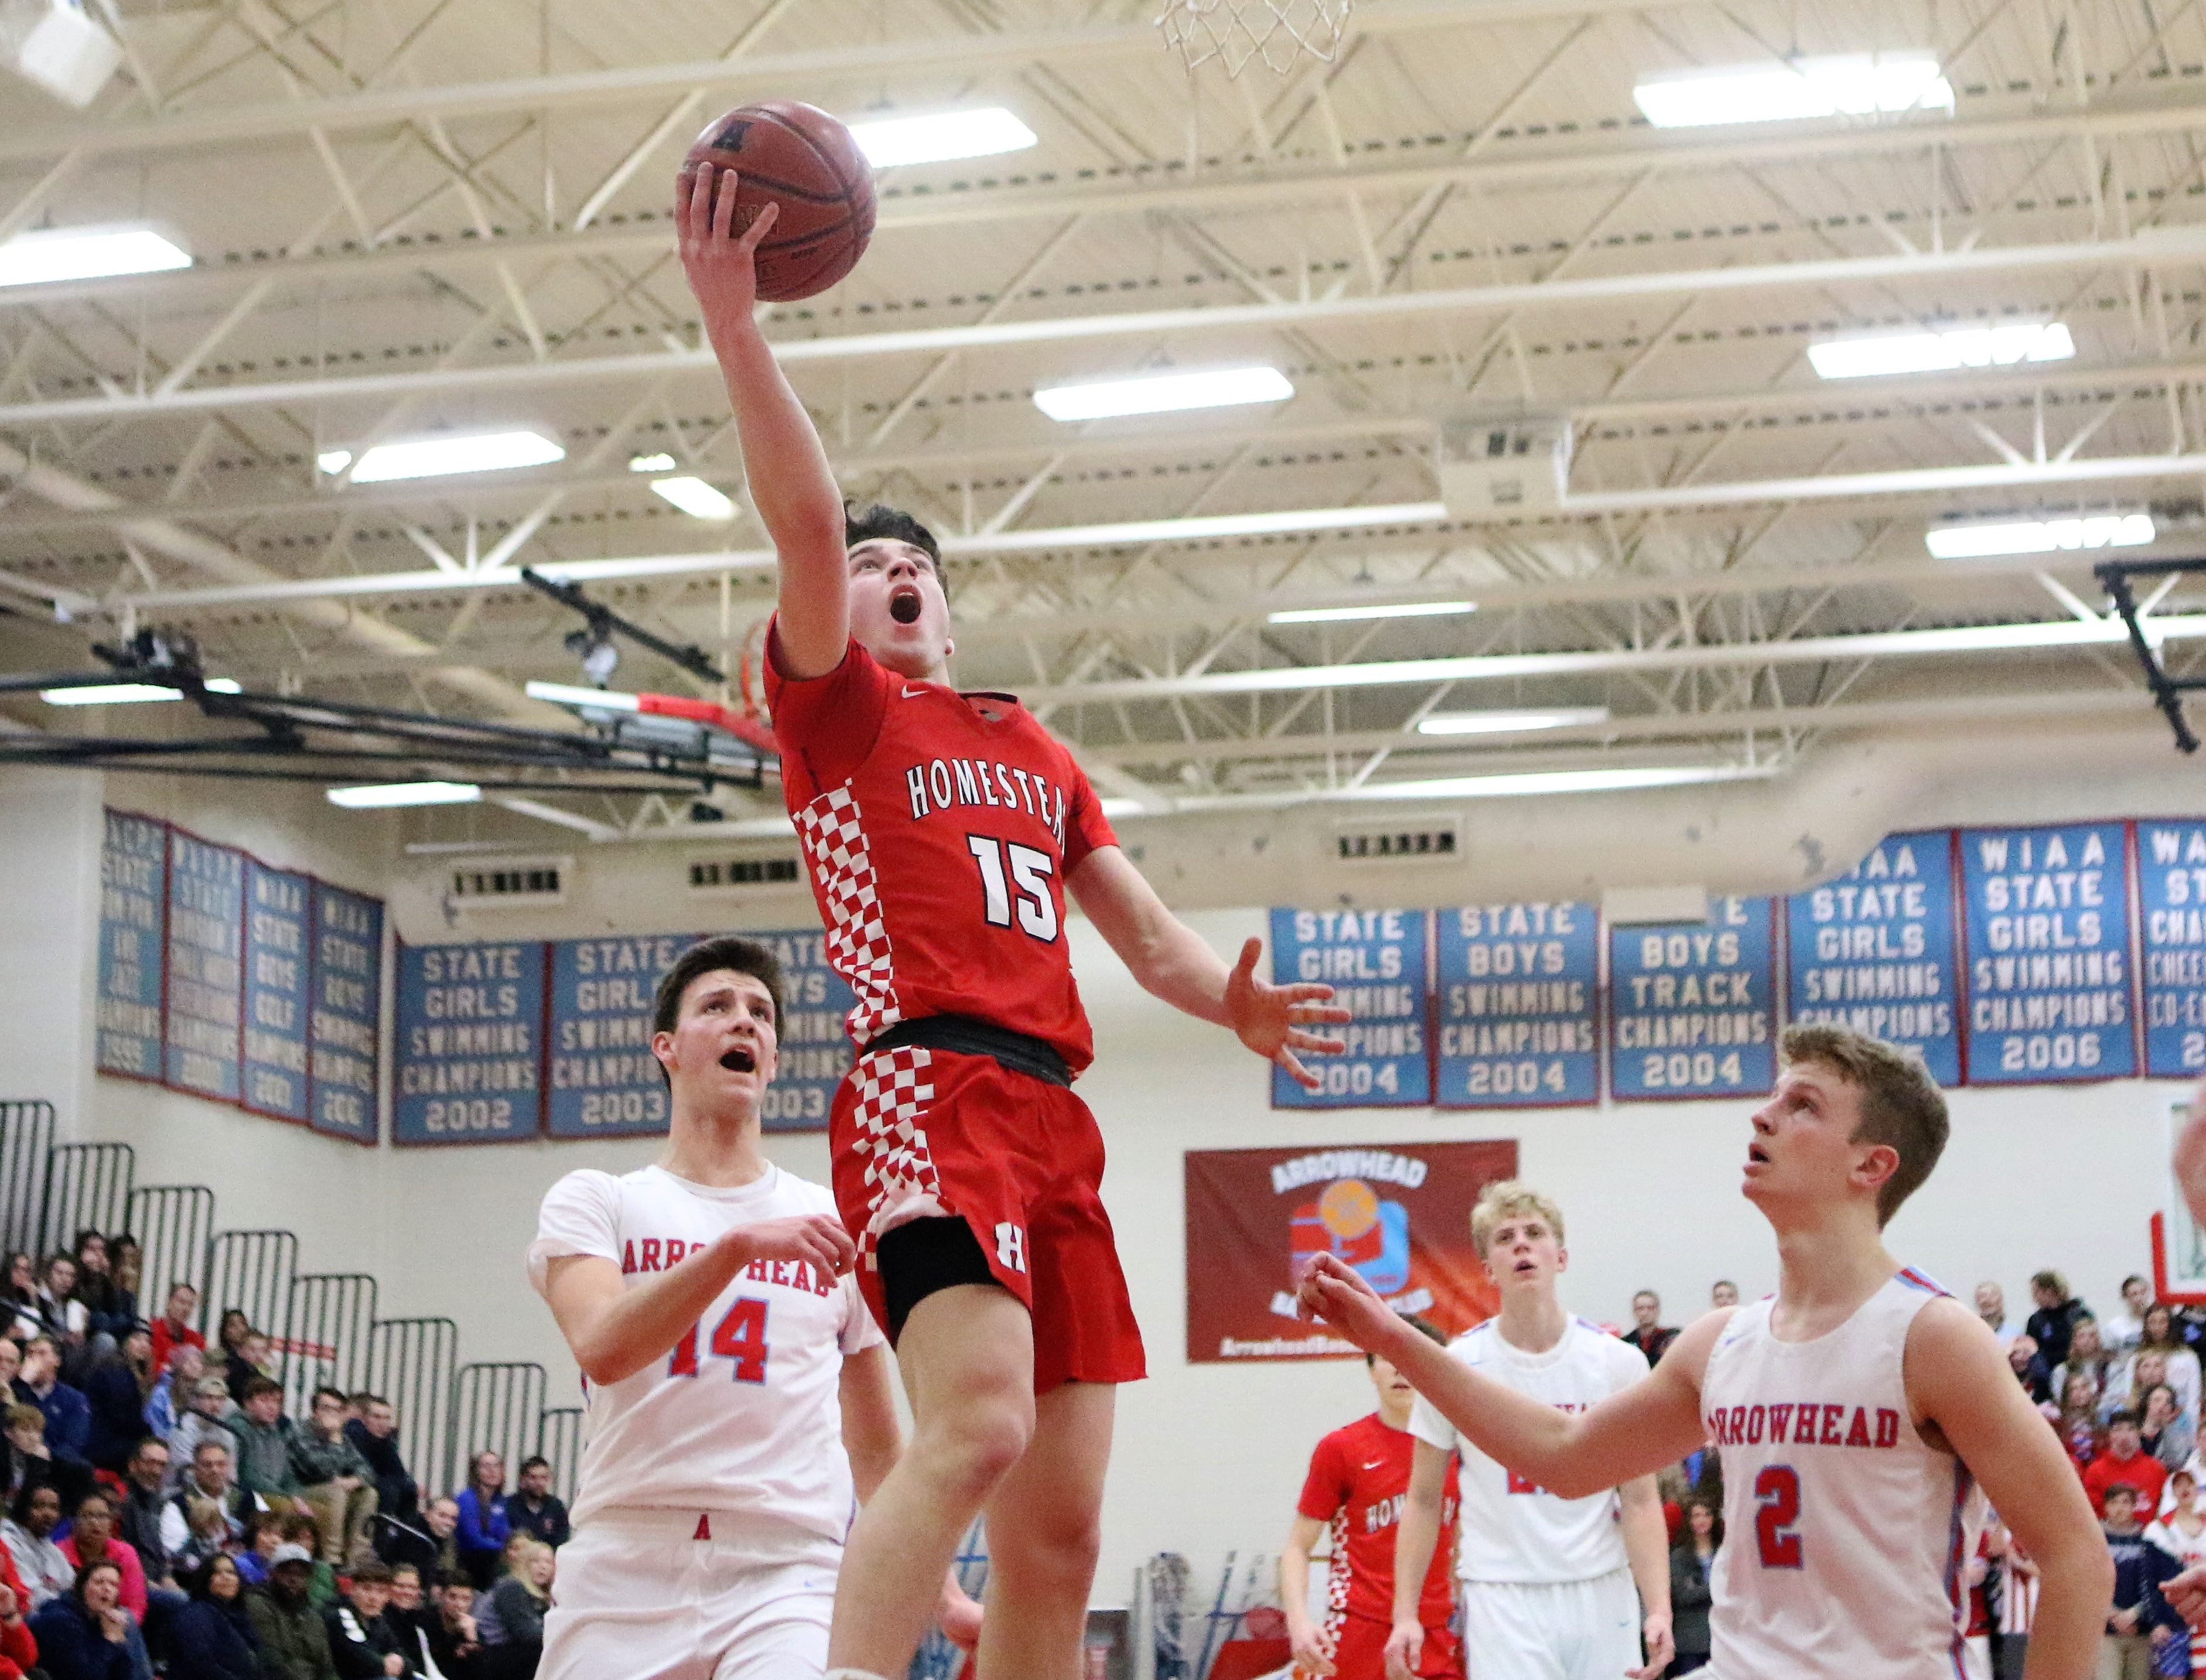 Homestead guard Ryan Waddell goes up for a layup as Arrowhead defenders watch during a WIAA regional final on March 2, 2019.